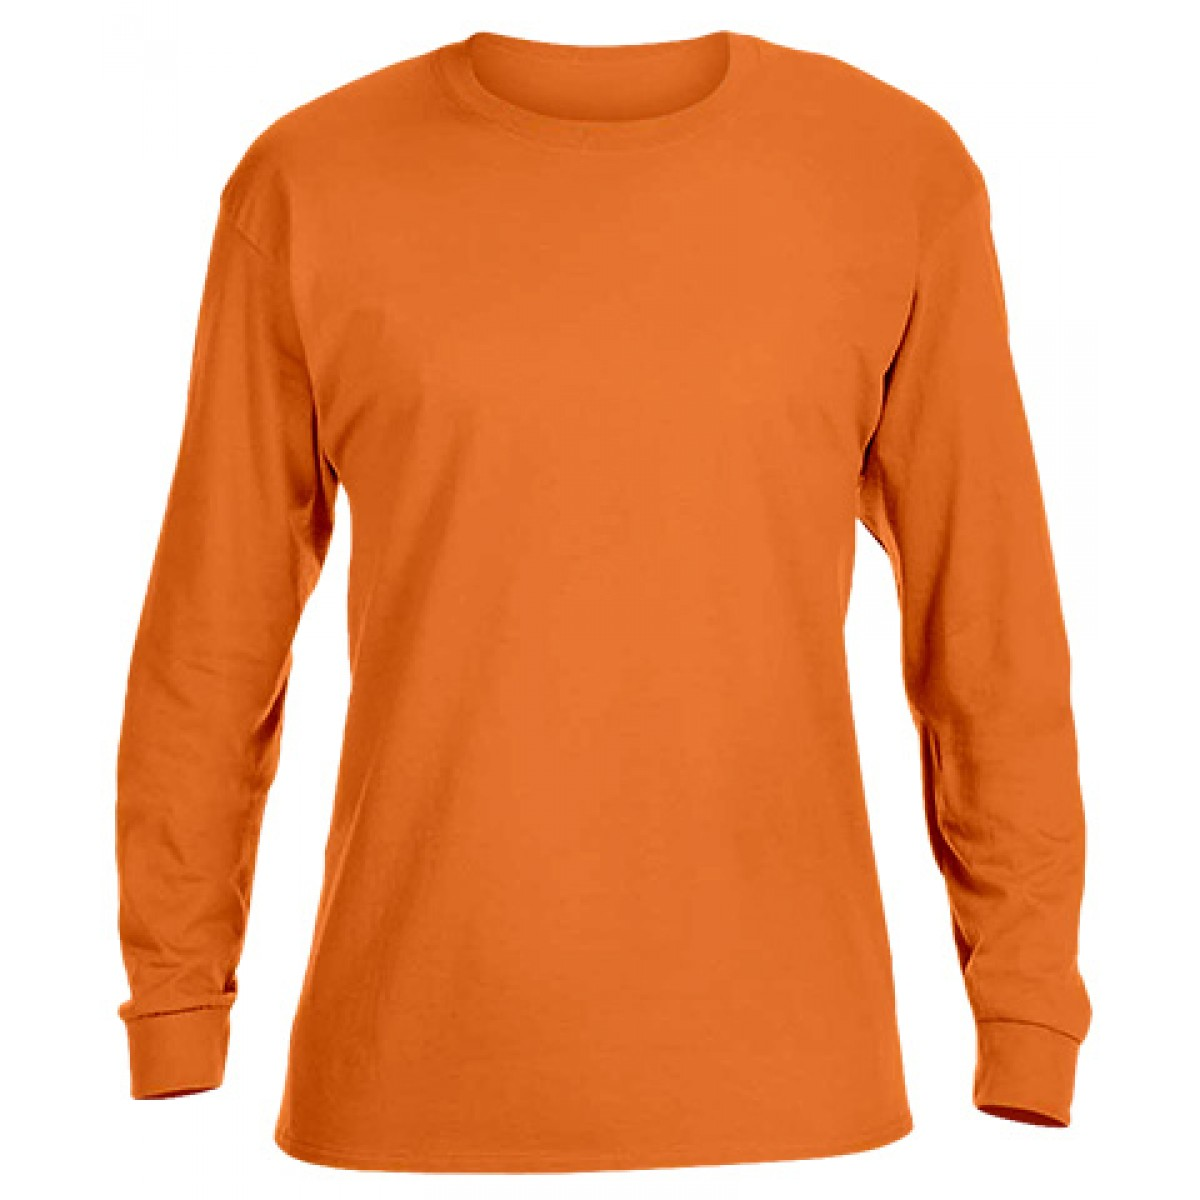 Basic Long Sleeve Crew Neck -Orange-YS